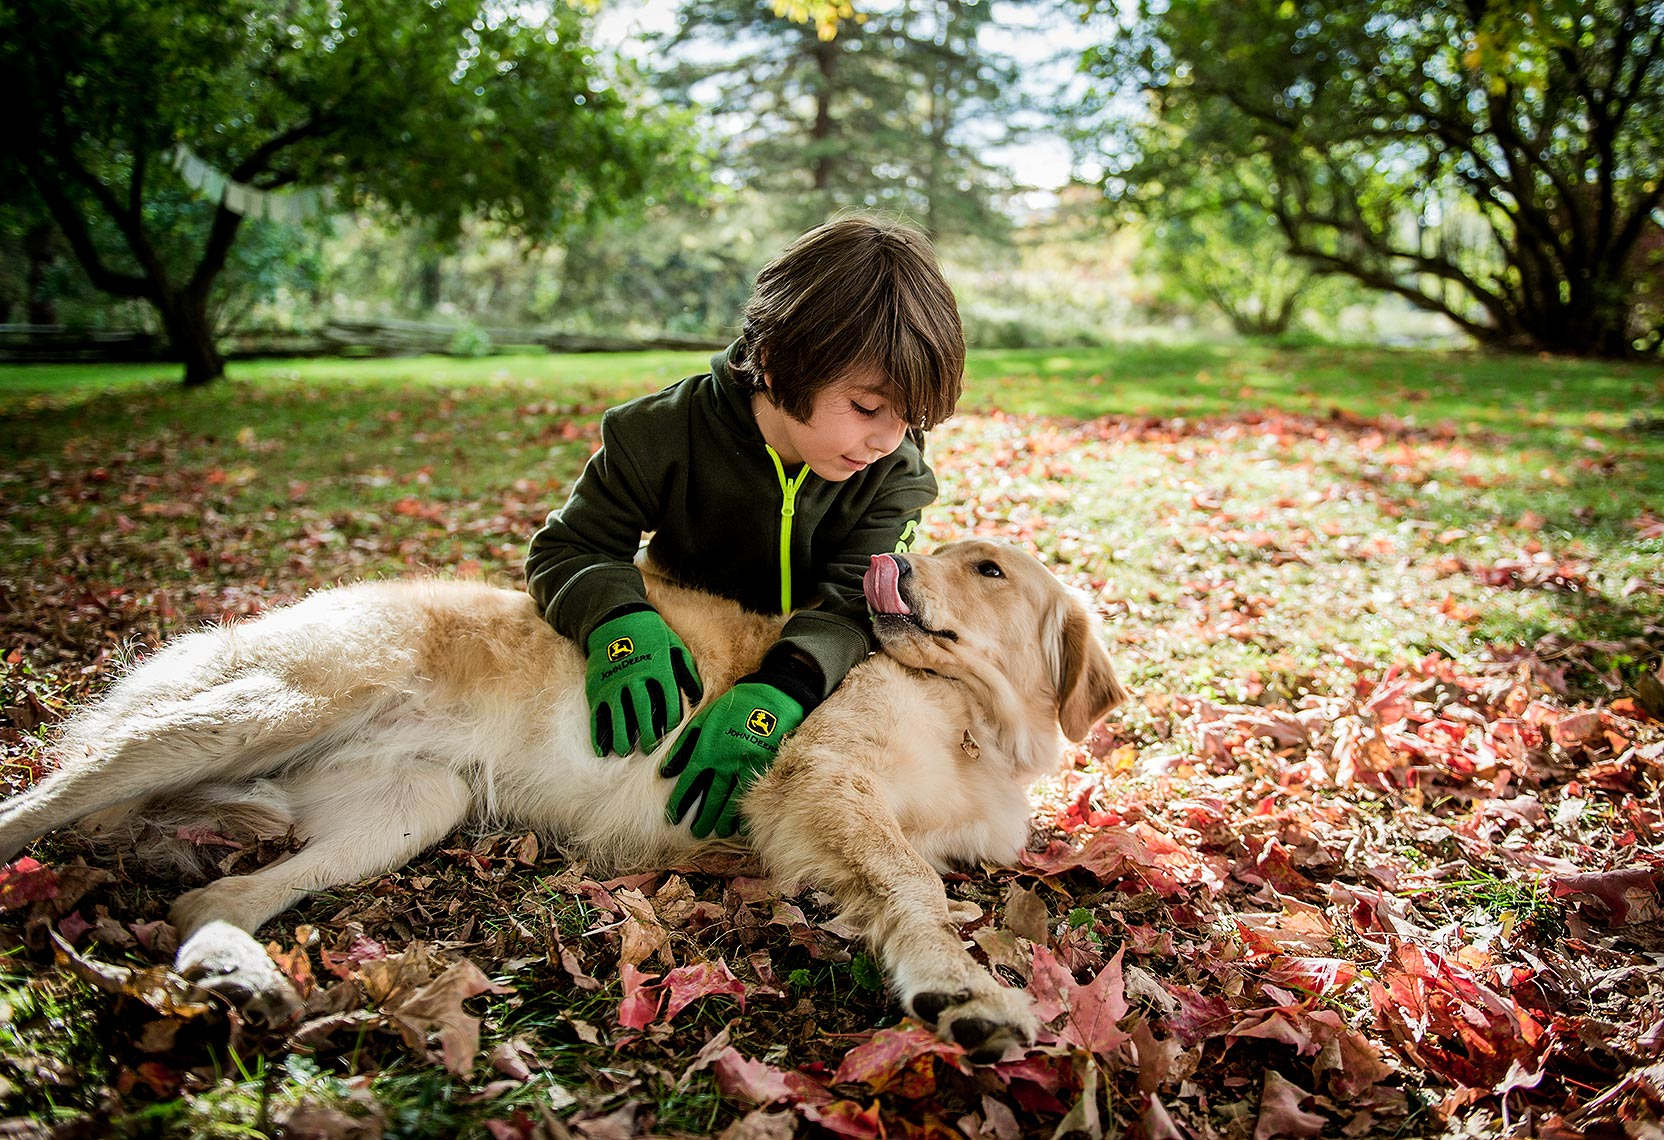 Dog and Boy in Autumn Leaves